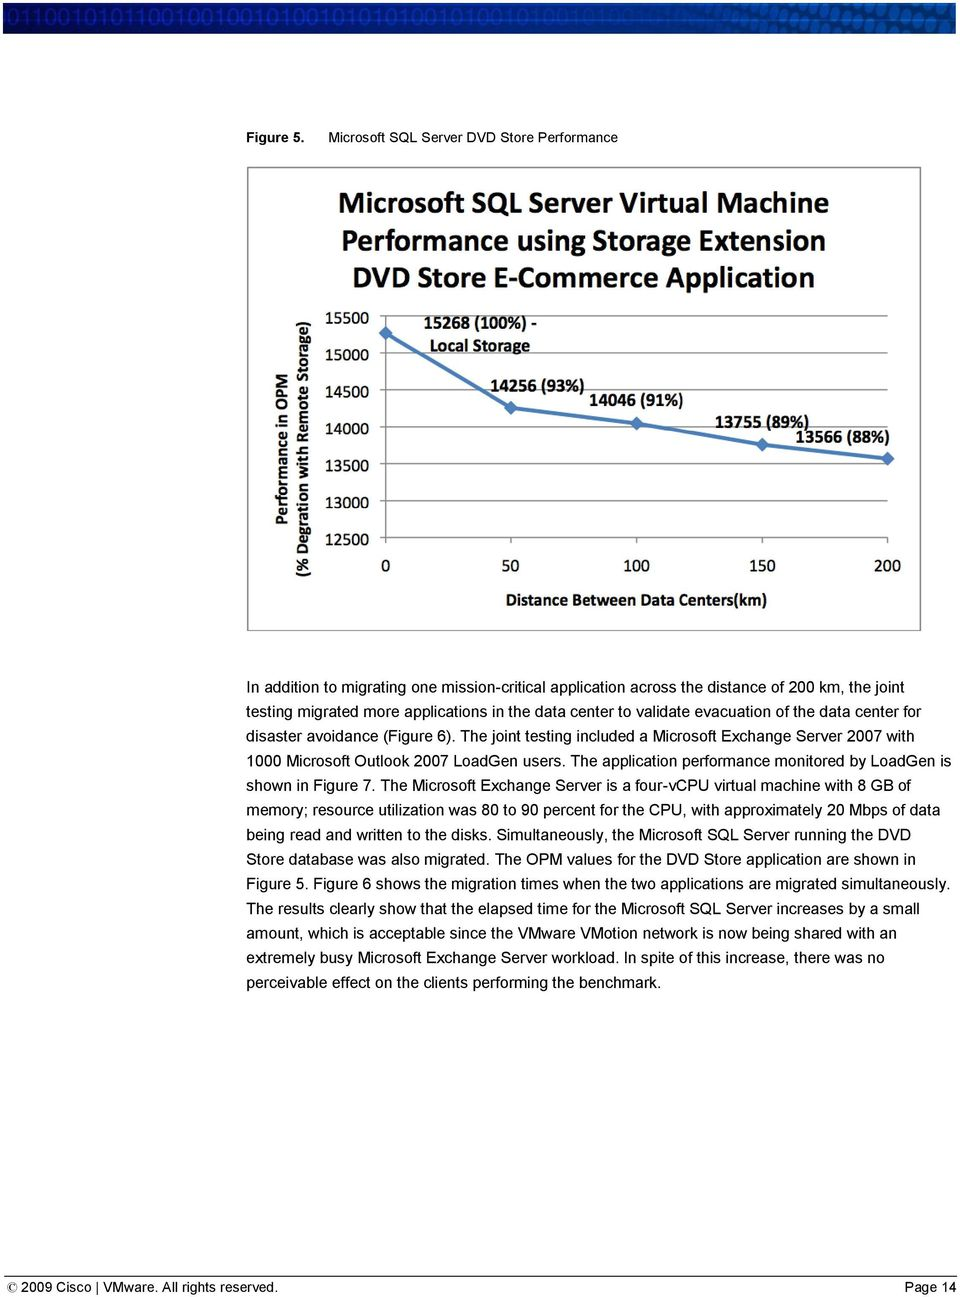 validate evacuation of the data center for disaster avoidance (Figure 6). The joint testing included a Microsoft Exchange Server 2007 with 1000 Microsoft Outlook 2007 LoadGen users.